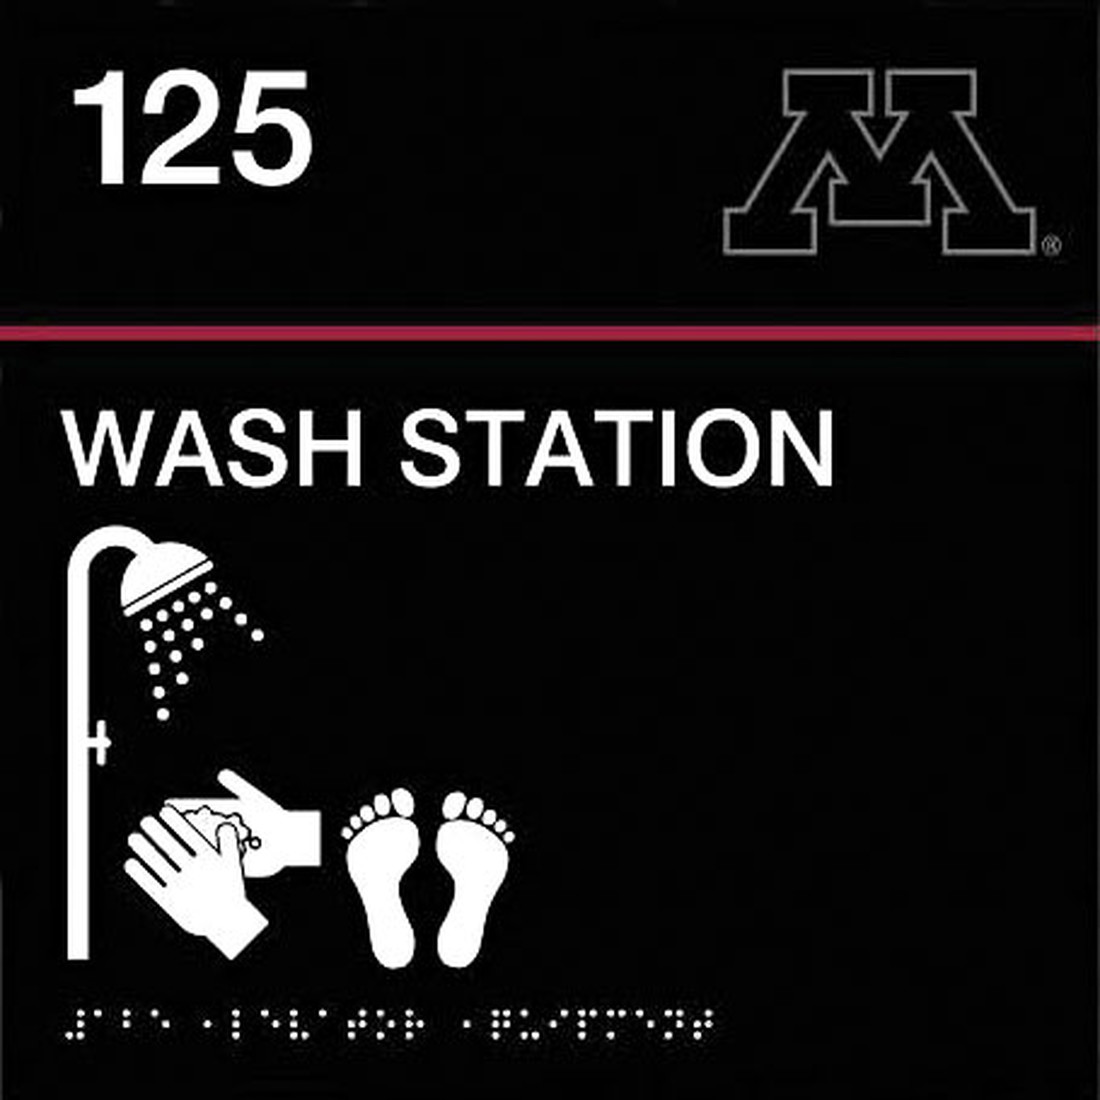 atoz-f-washstationoptions.jpg